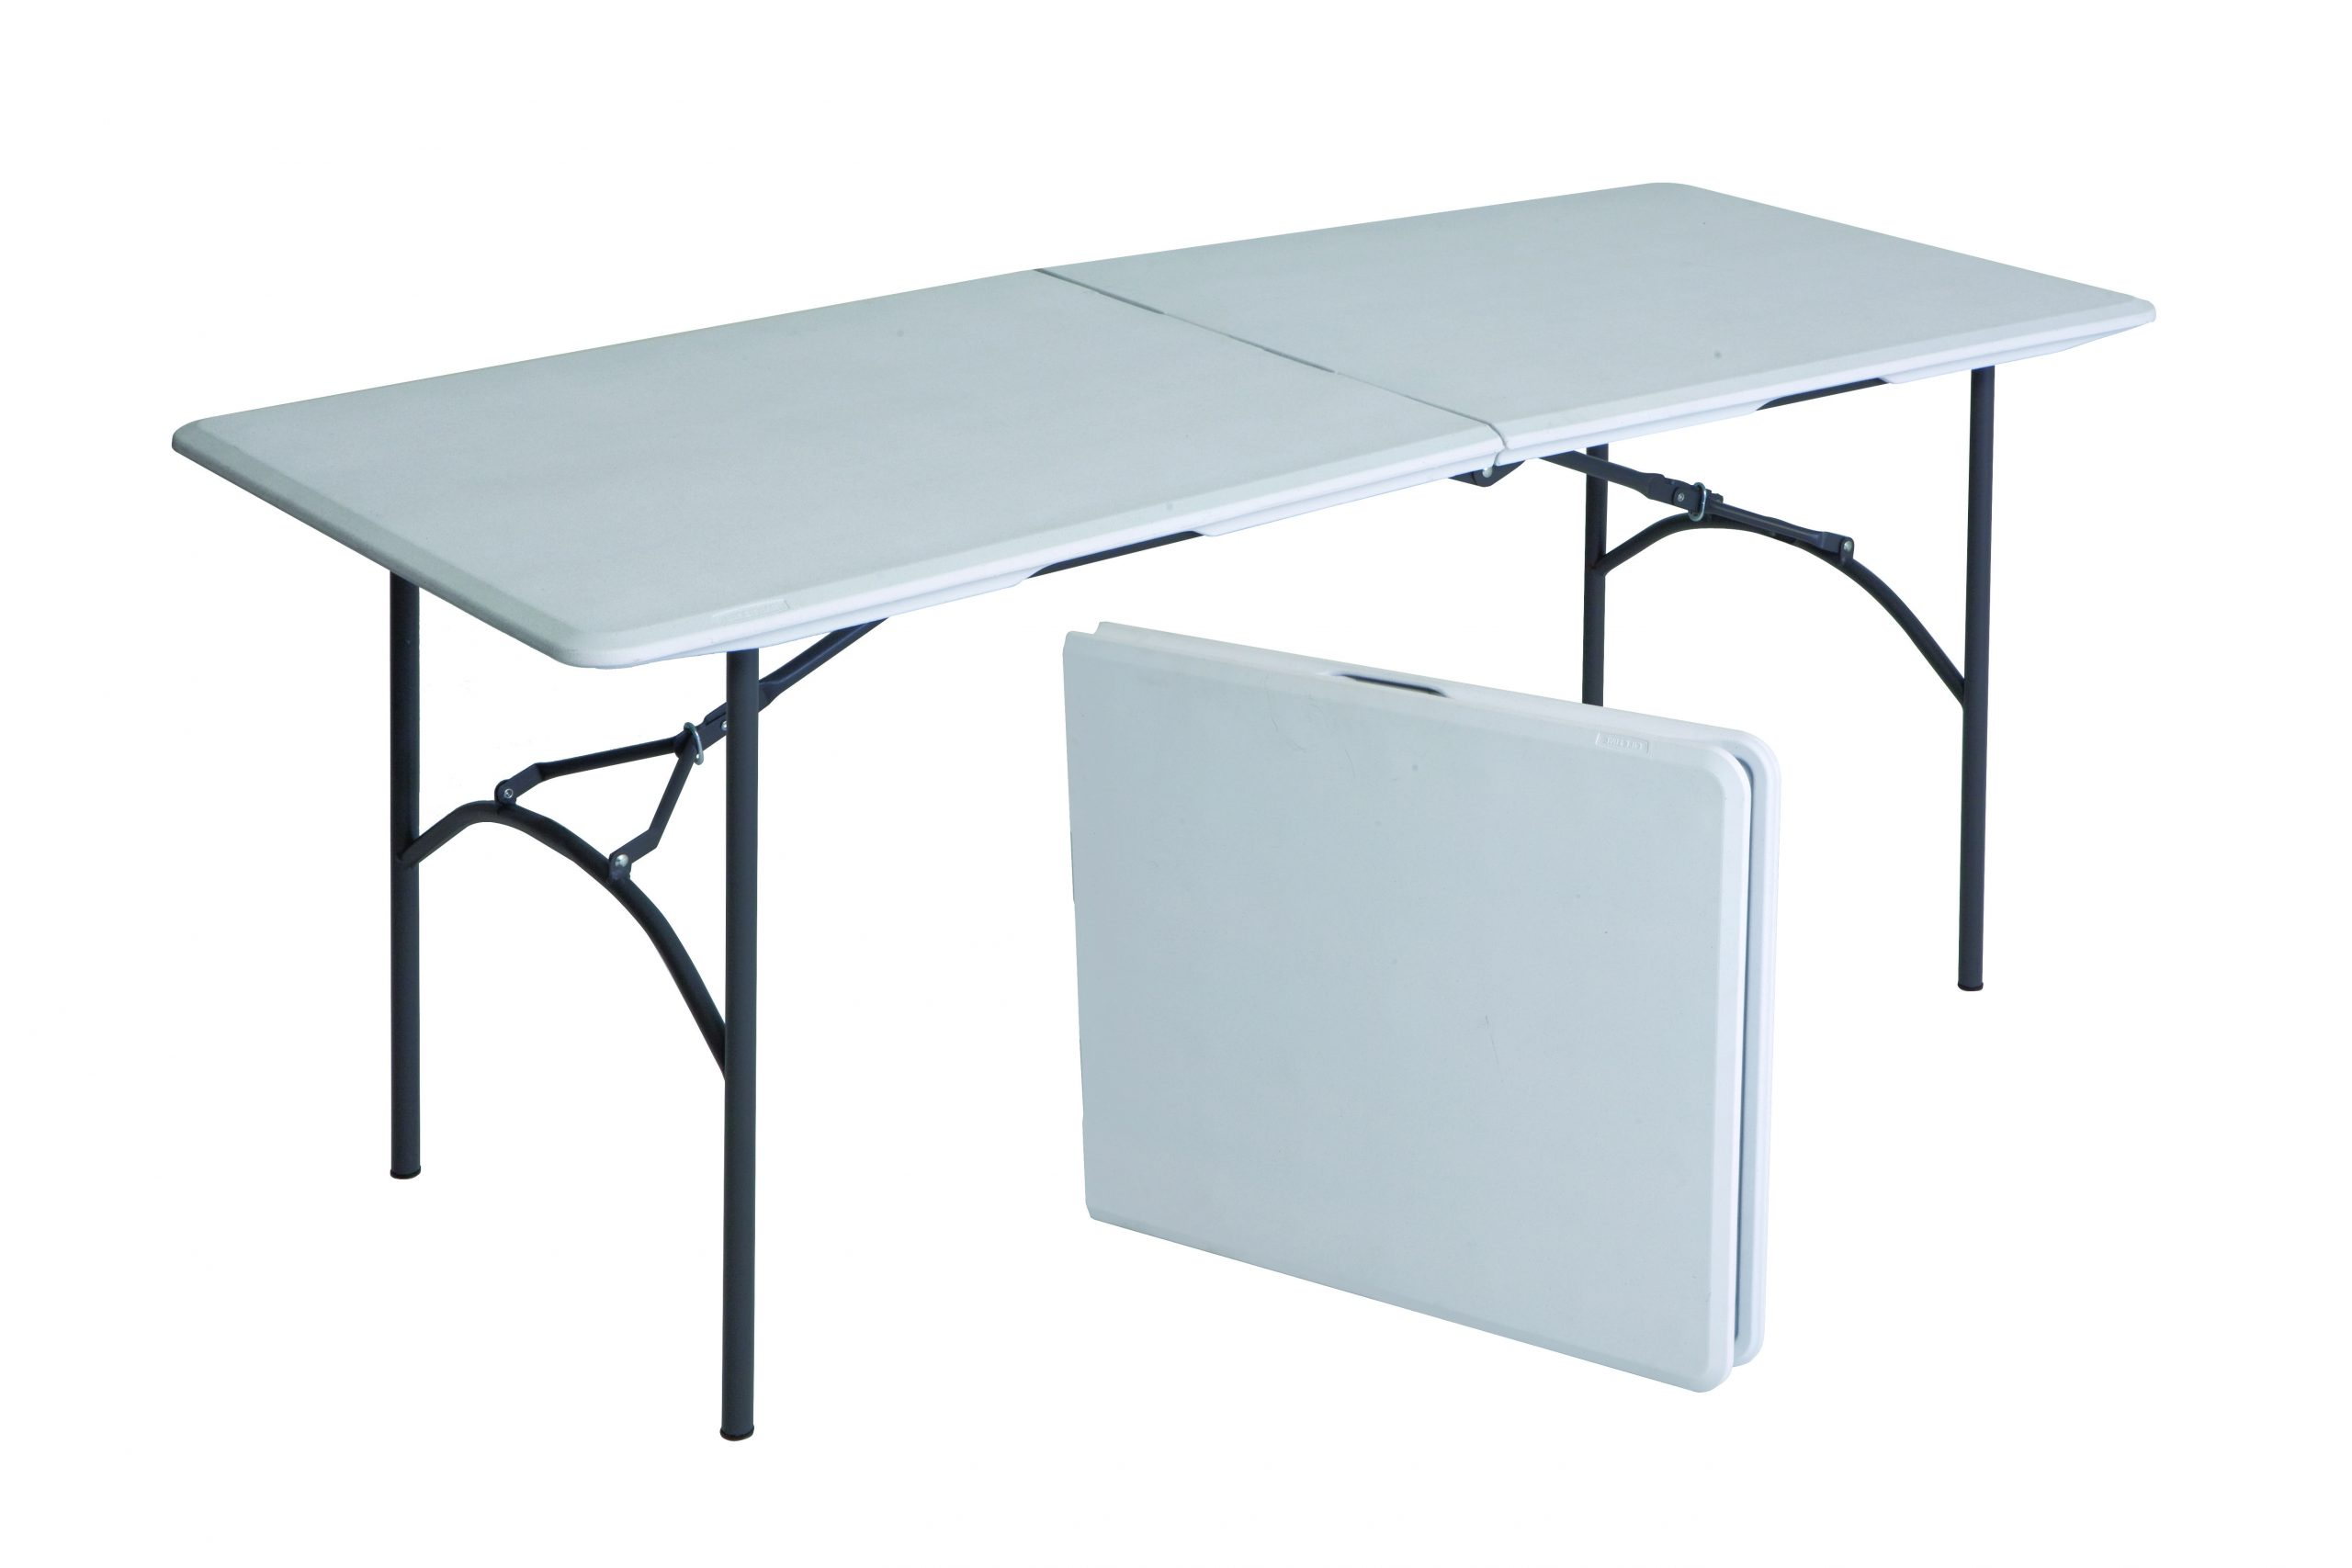 Marquee 183 X 76 X 73 Steel Bi Fold Blow Mould Table within size 5616 X 3744